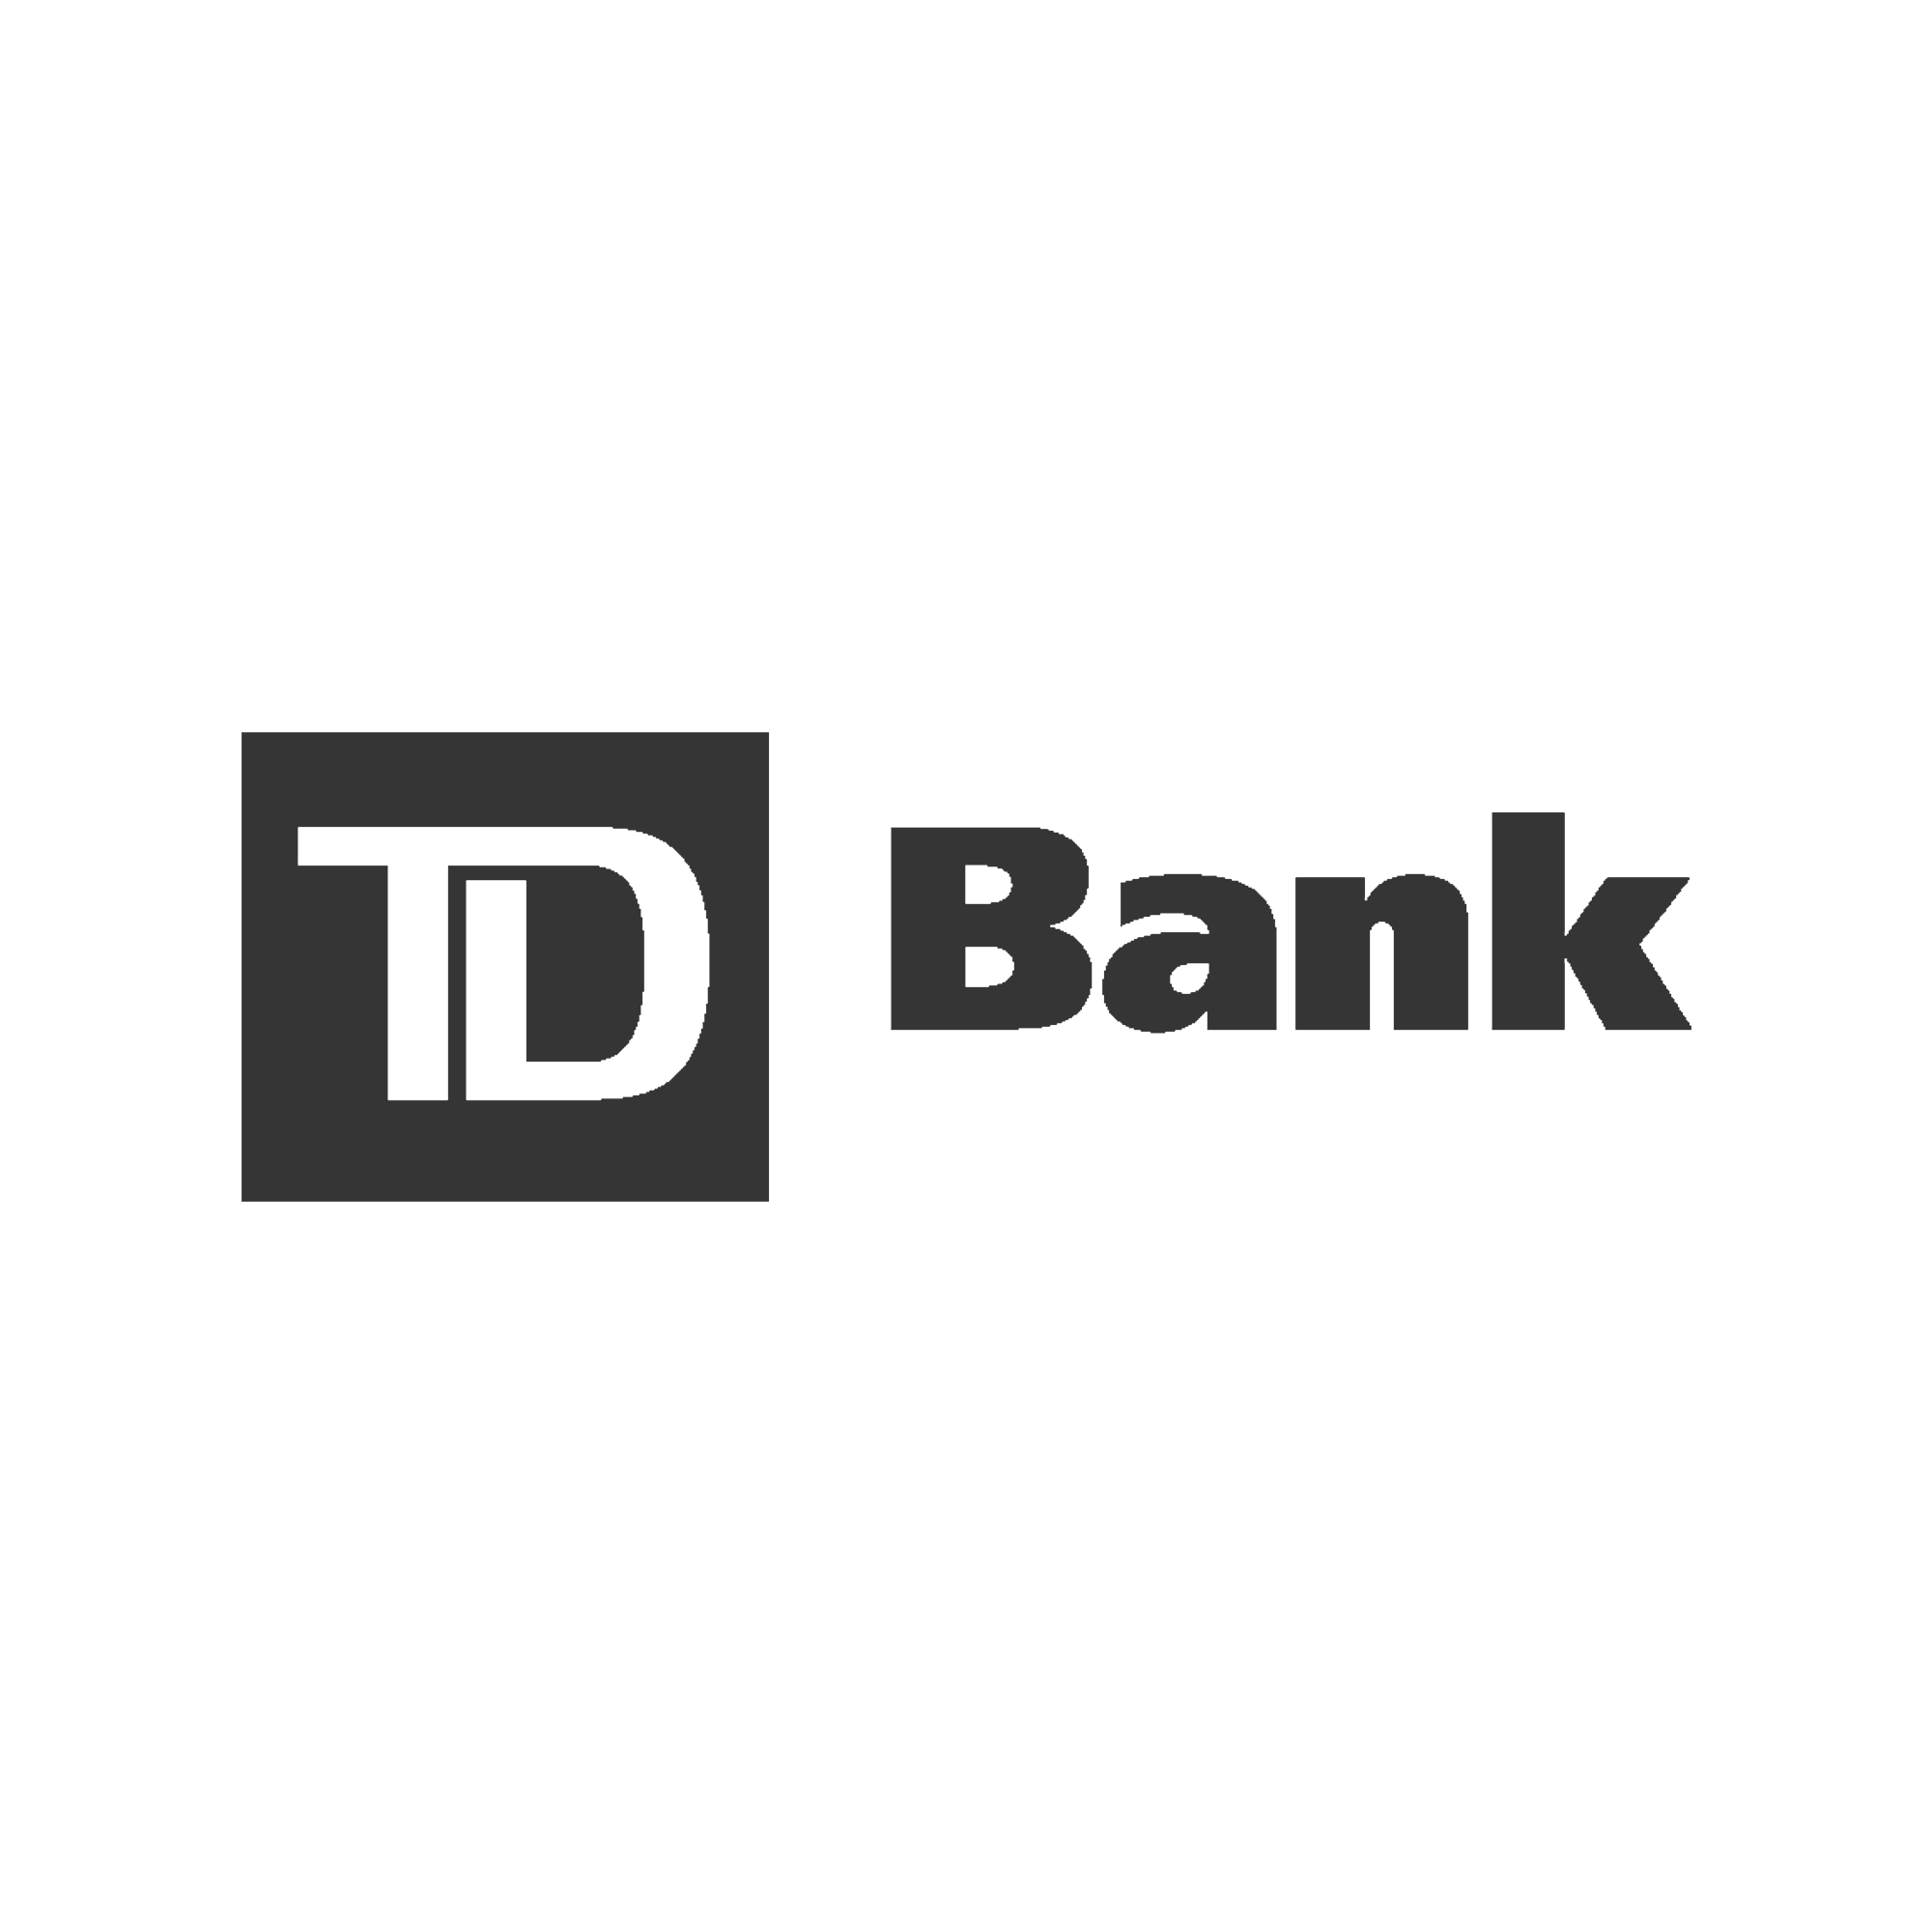 5_TD Bank_CLEAR.png